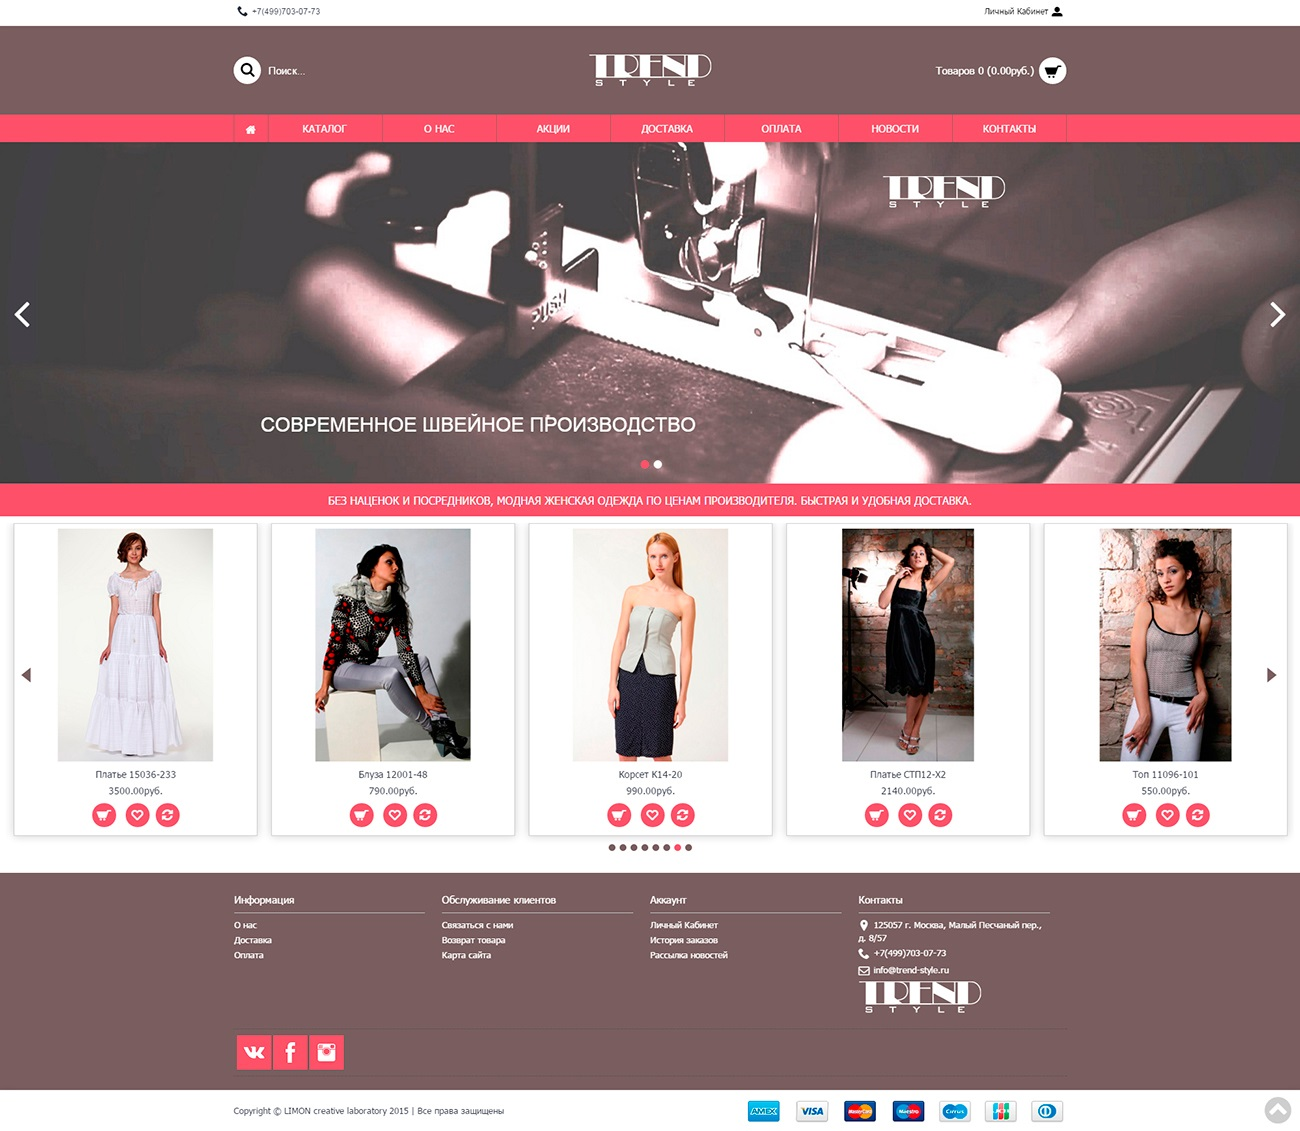 womens clothing industry report In that year, women's apparel sales in the united states amounted to about 111 billion us dollars industry reports understand and assess industries.